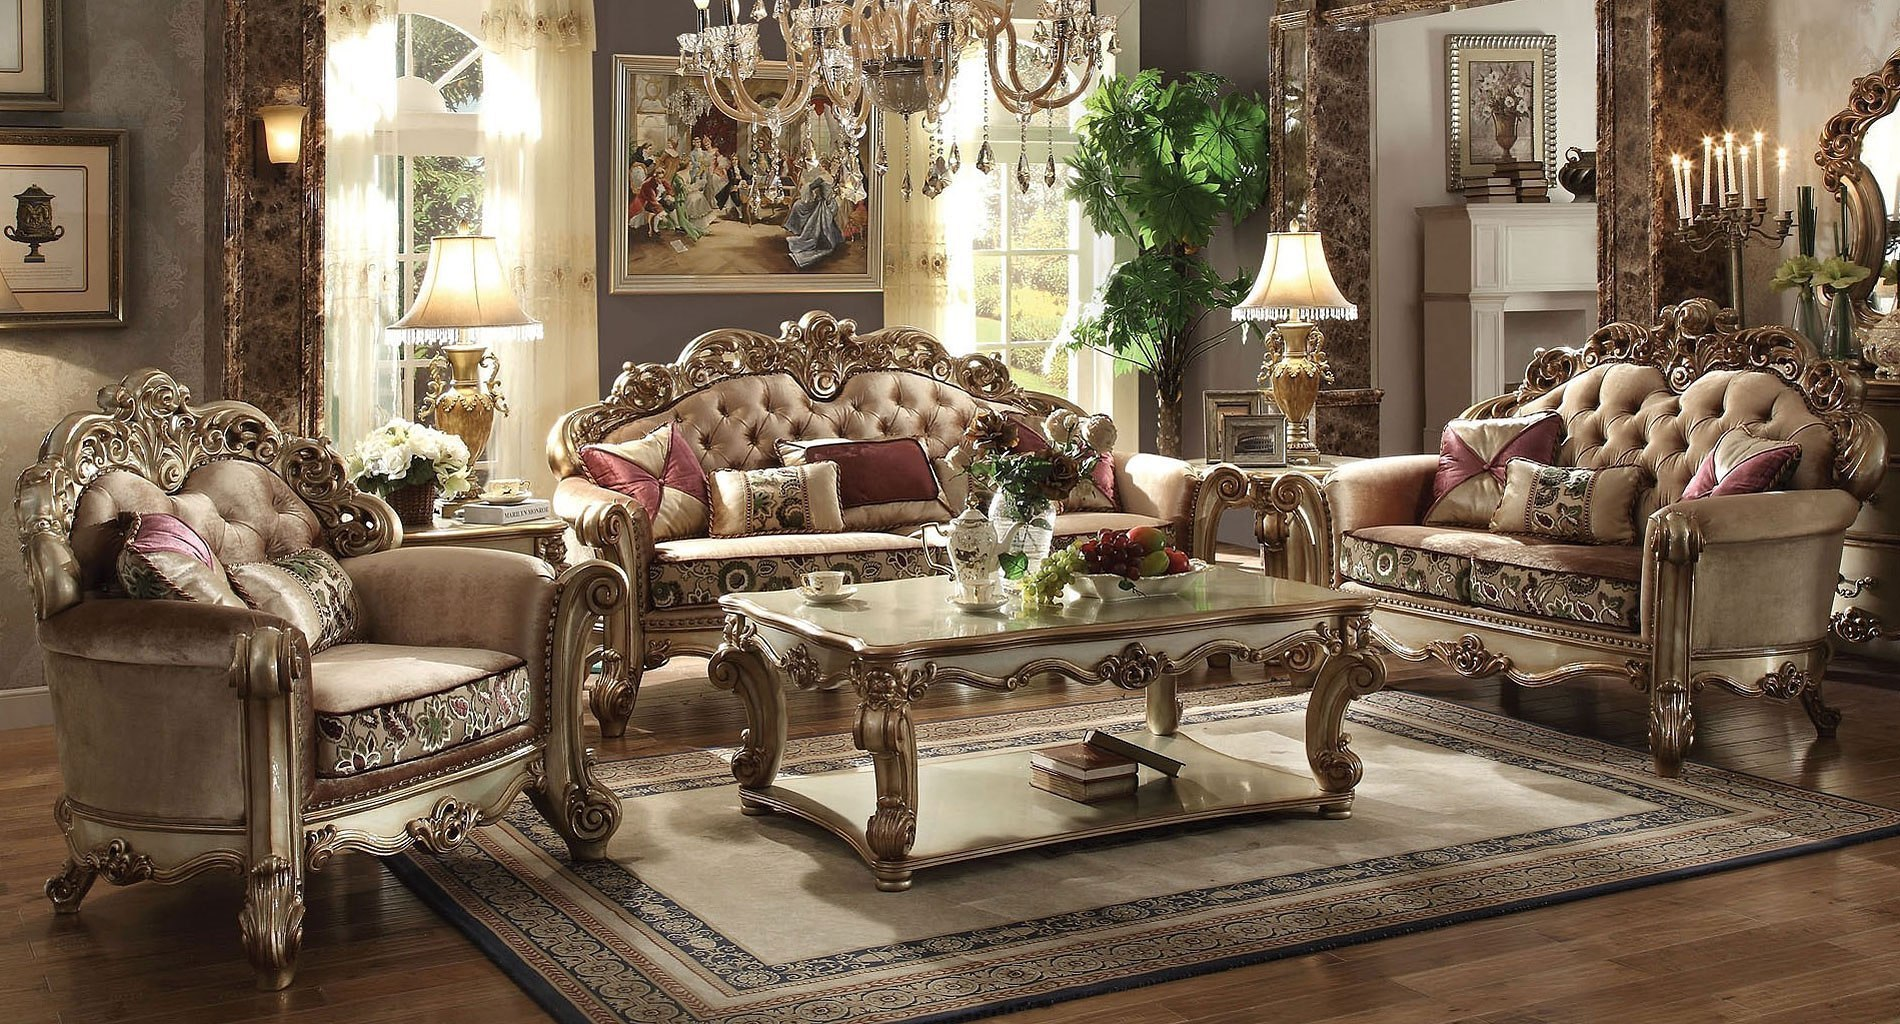 Vendome Living Room Set (Gold Patina / Bone Fabric)